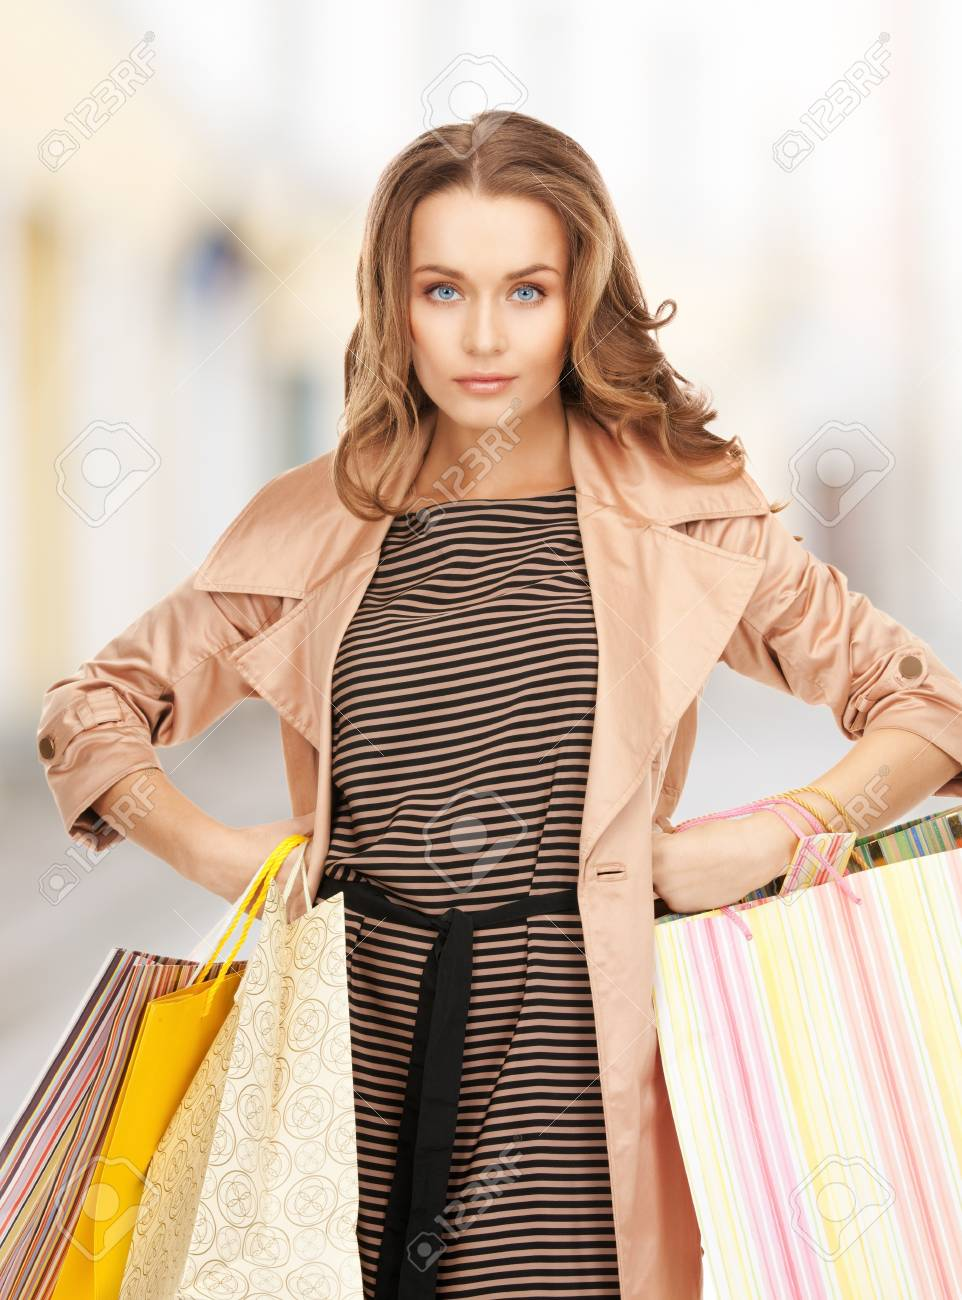 shopping and tourism concept - beautiful woman with shopping bags in ctiy Stock Photo - 21034305